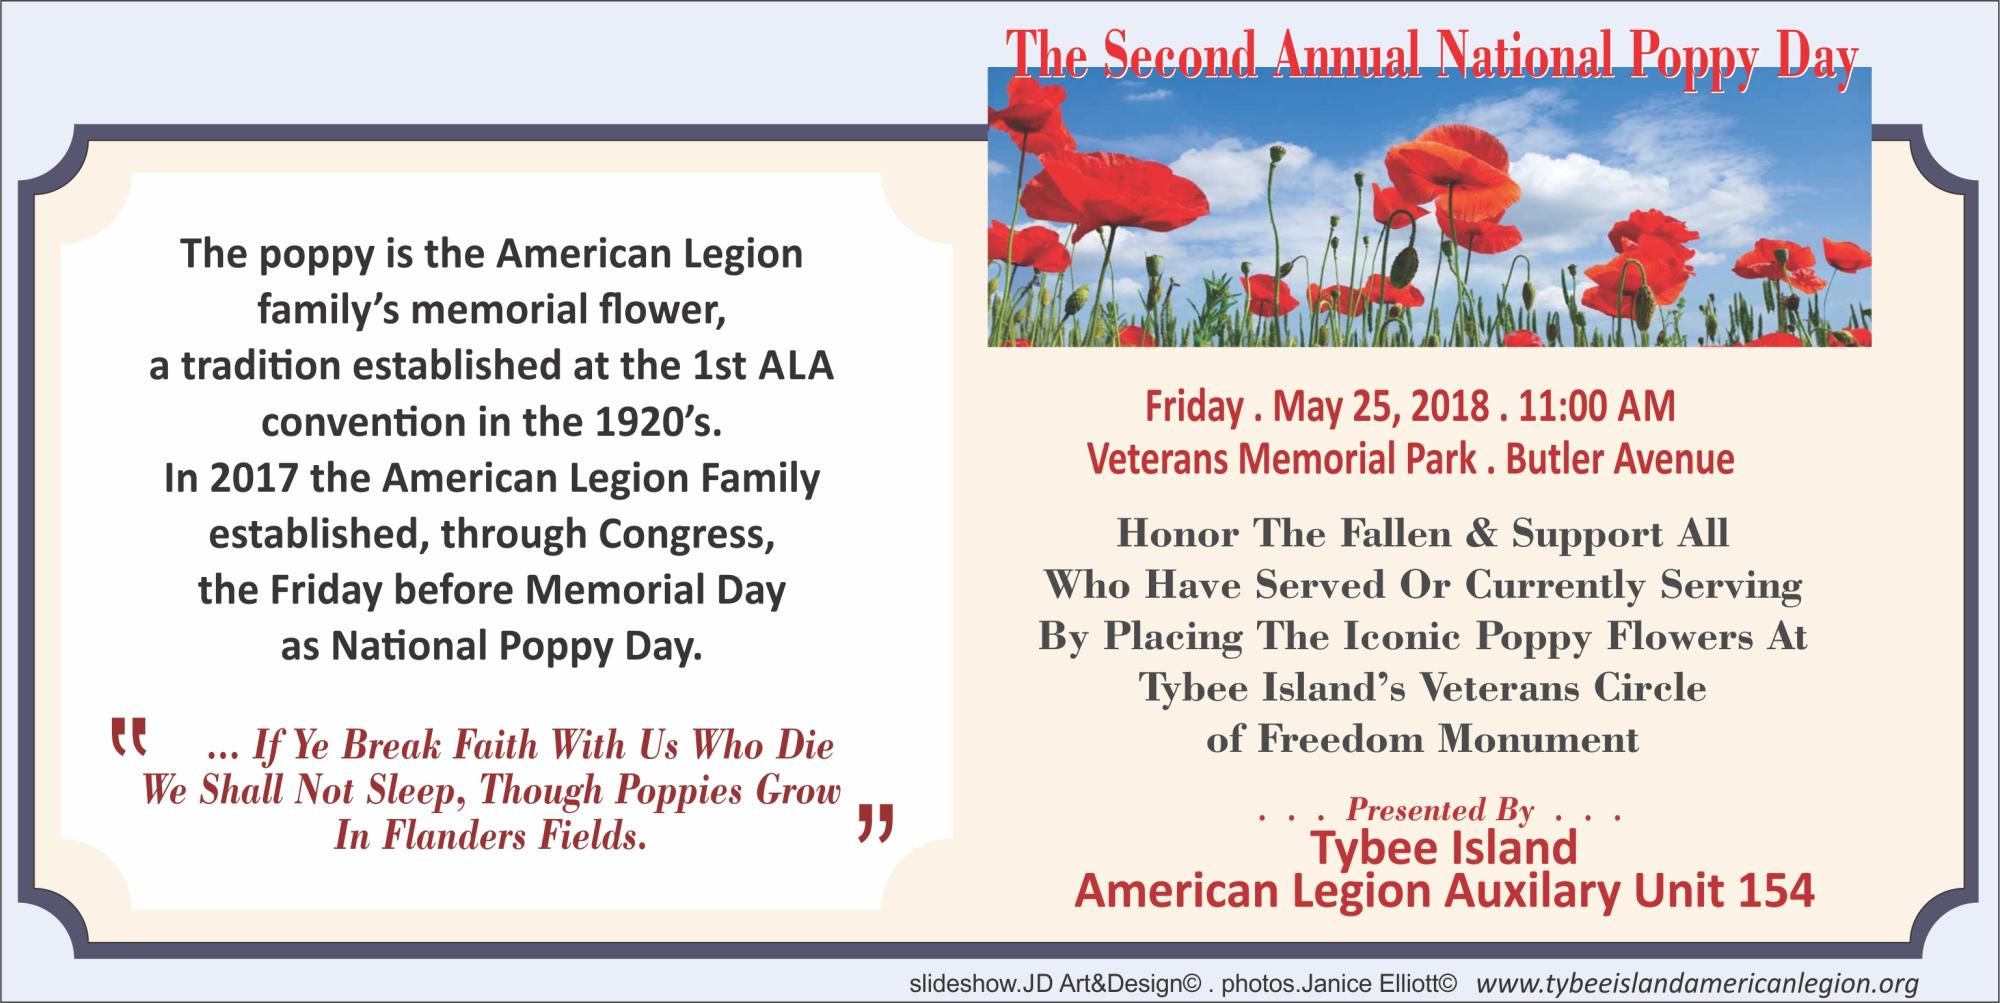 poppyday2018invitation.jpg